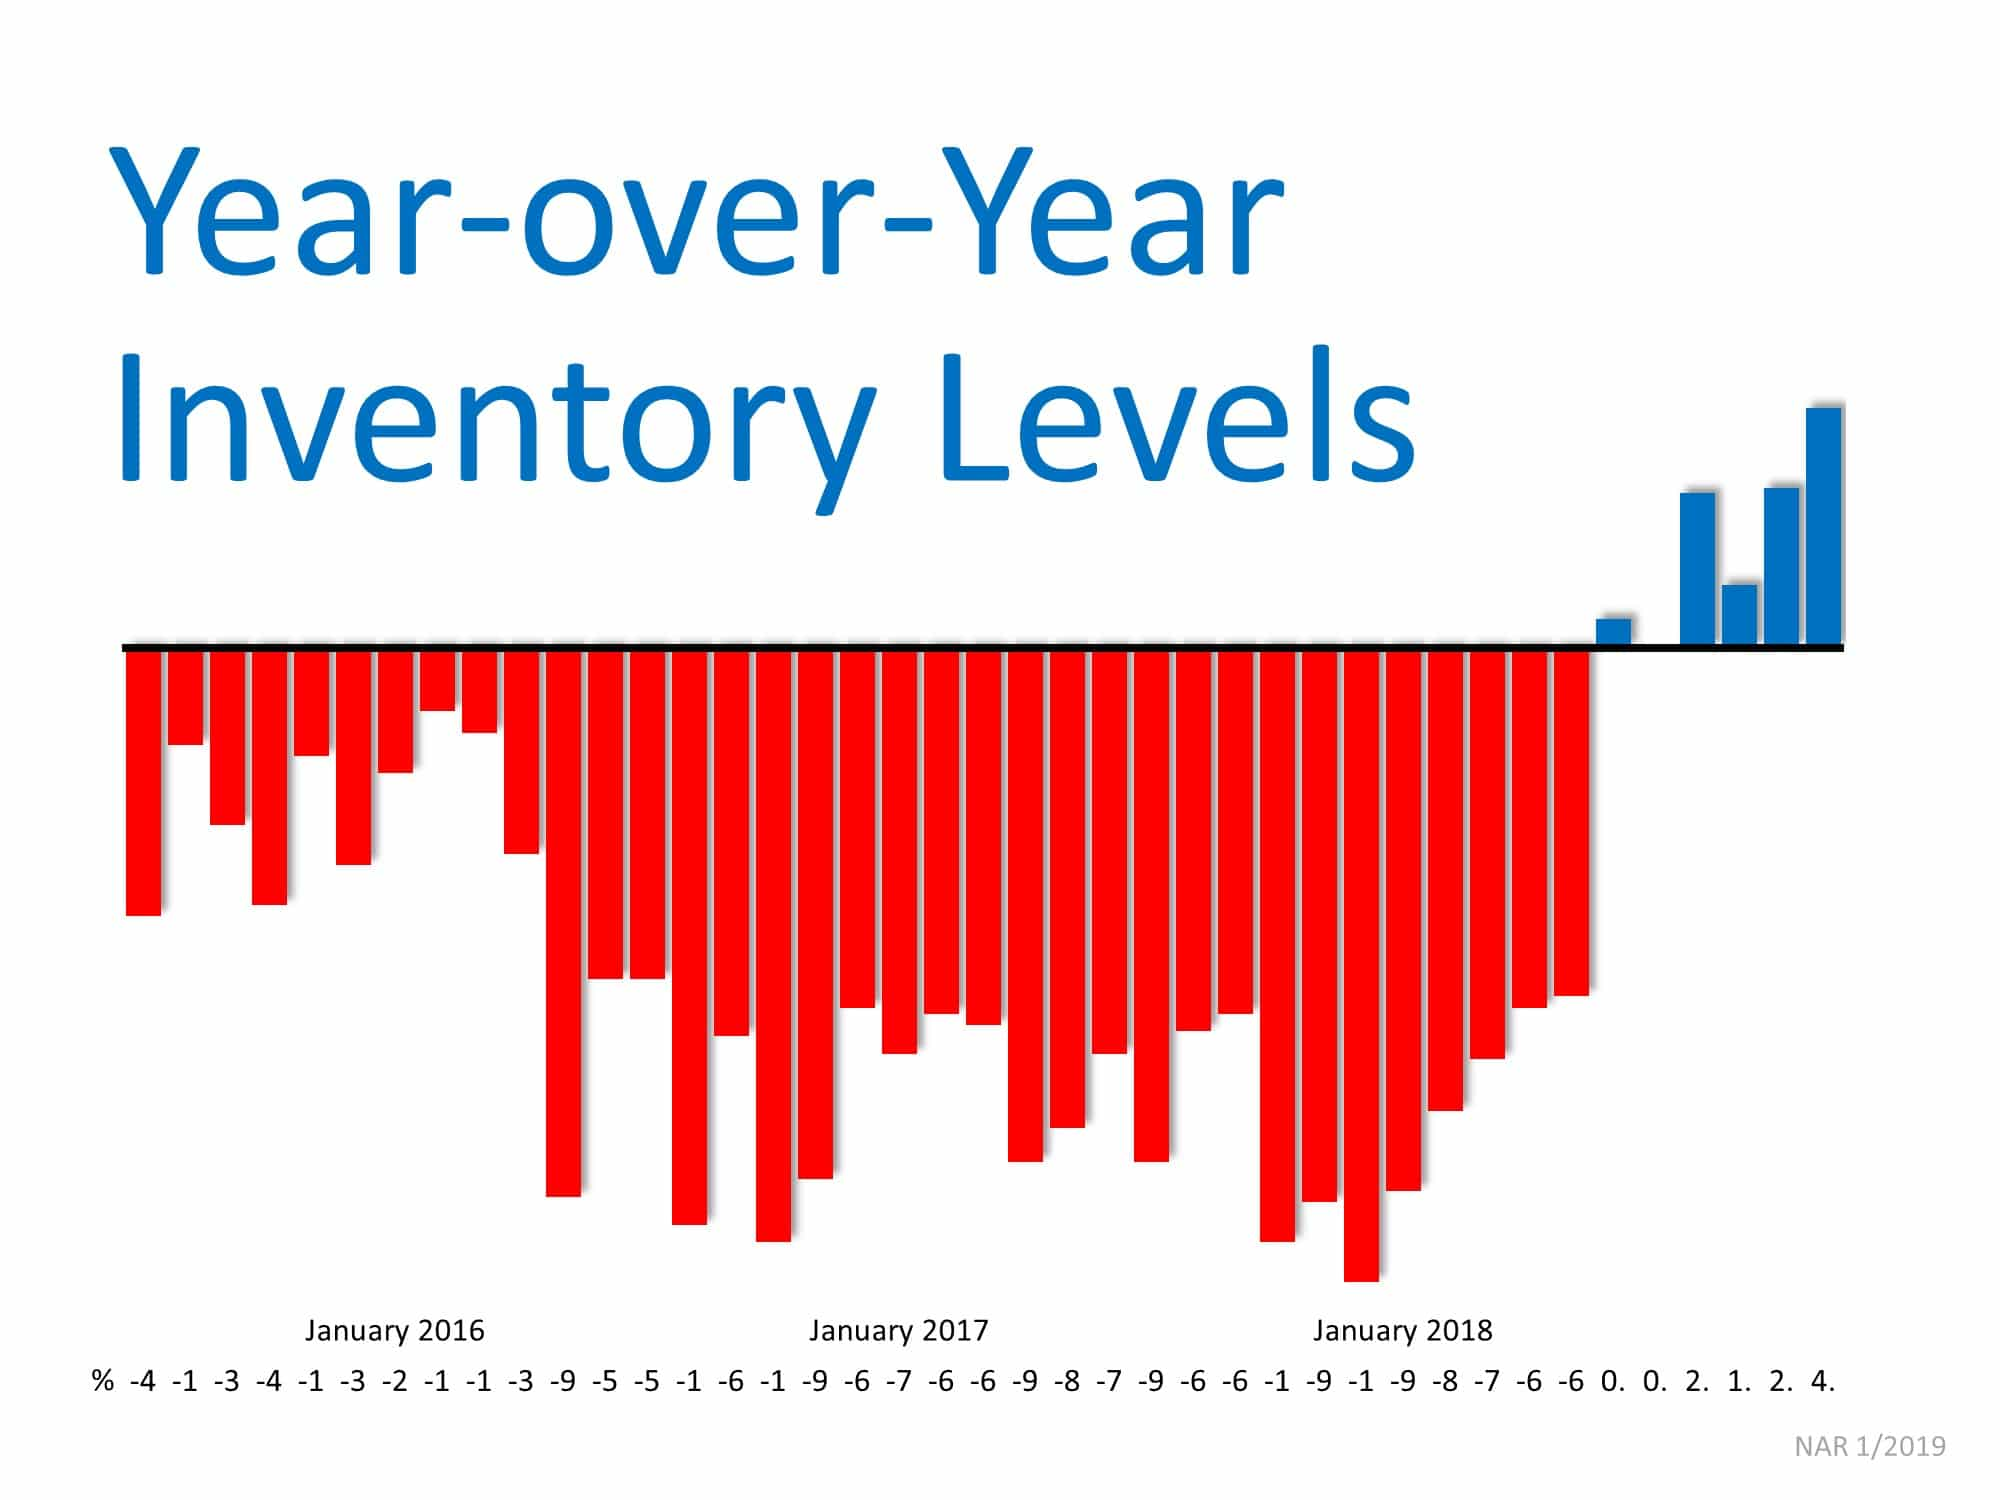 Year-Over-Year Inventory Levels